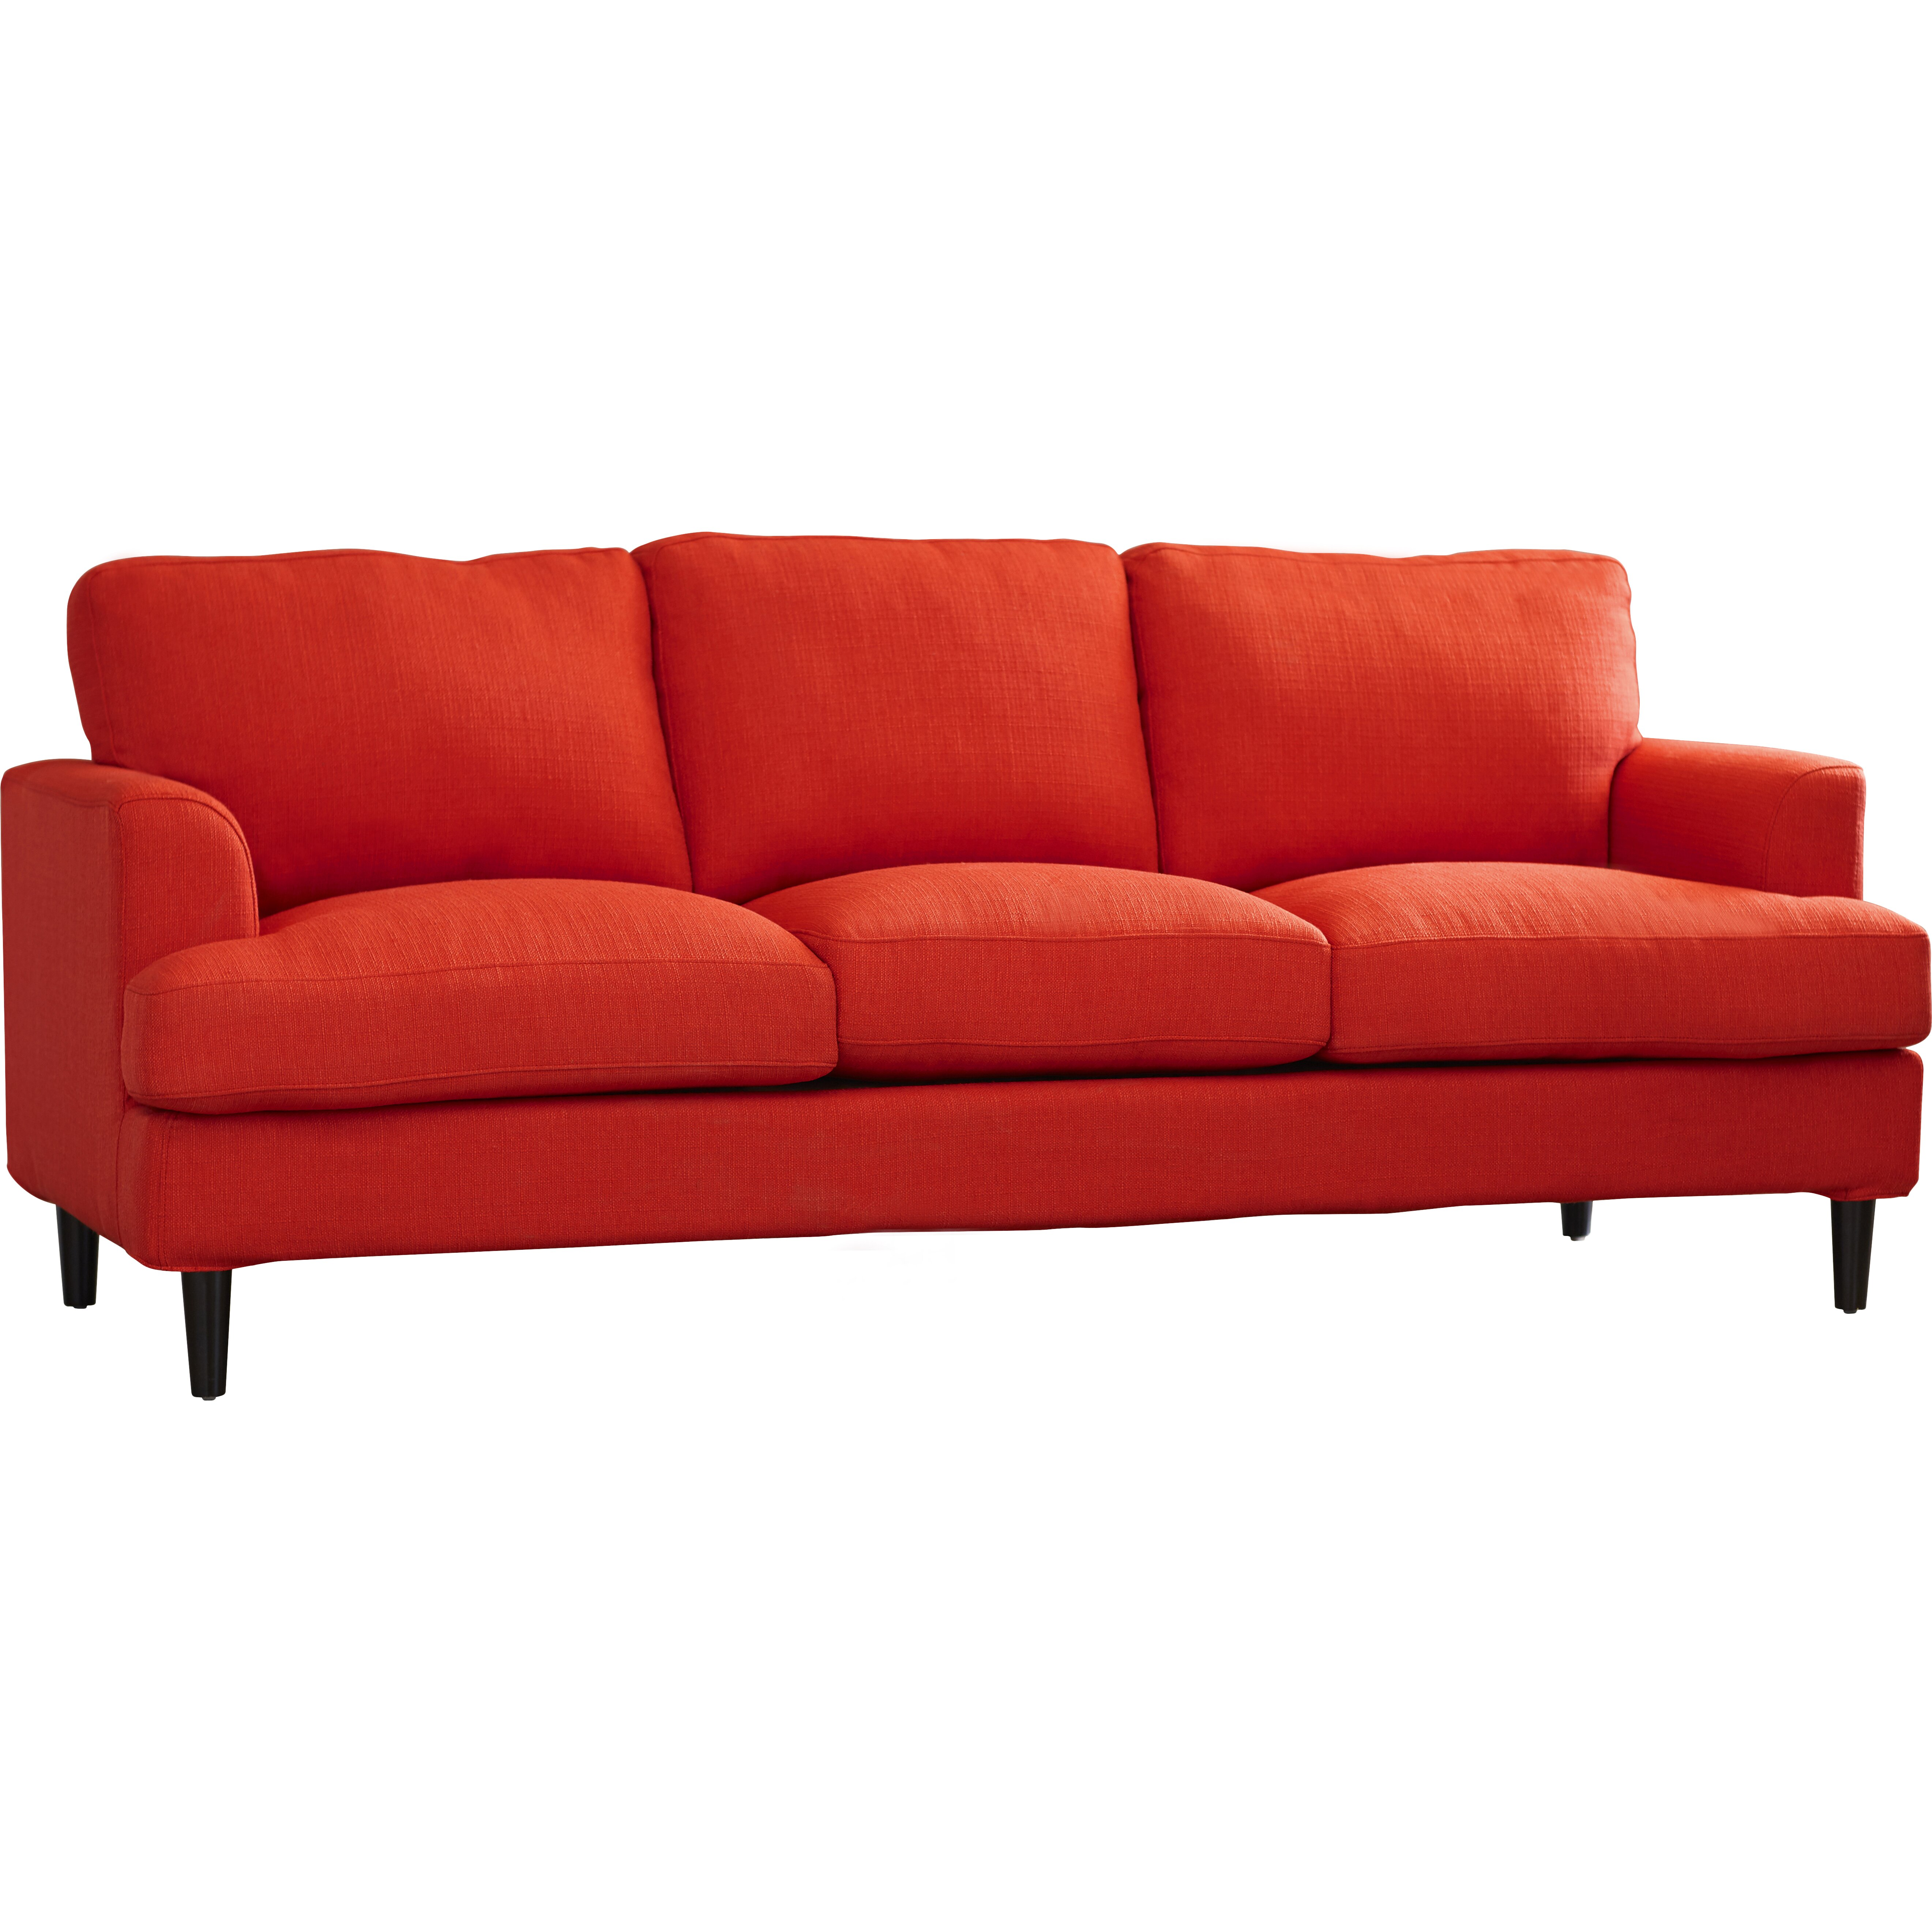 Clearance Slipcovers 28 Images Clearance Sofa Beds 28 Images Clearance Futons Clearance Sofa